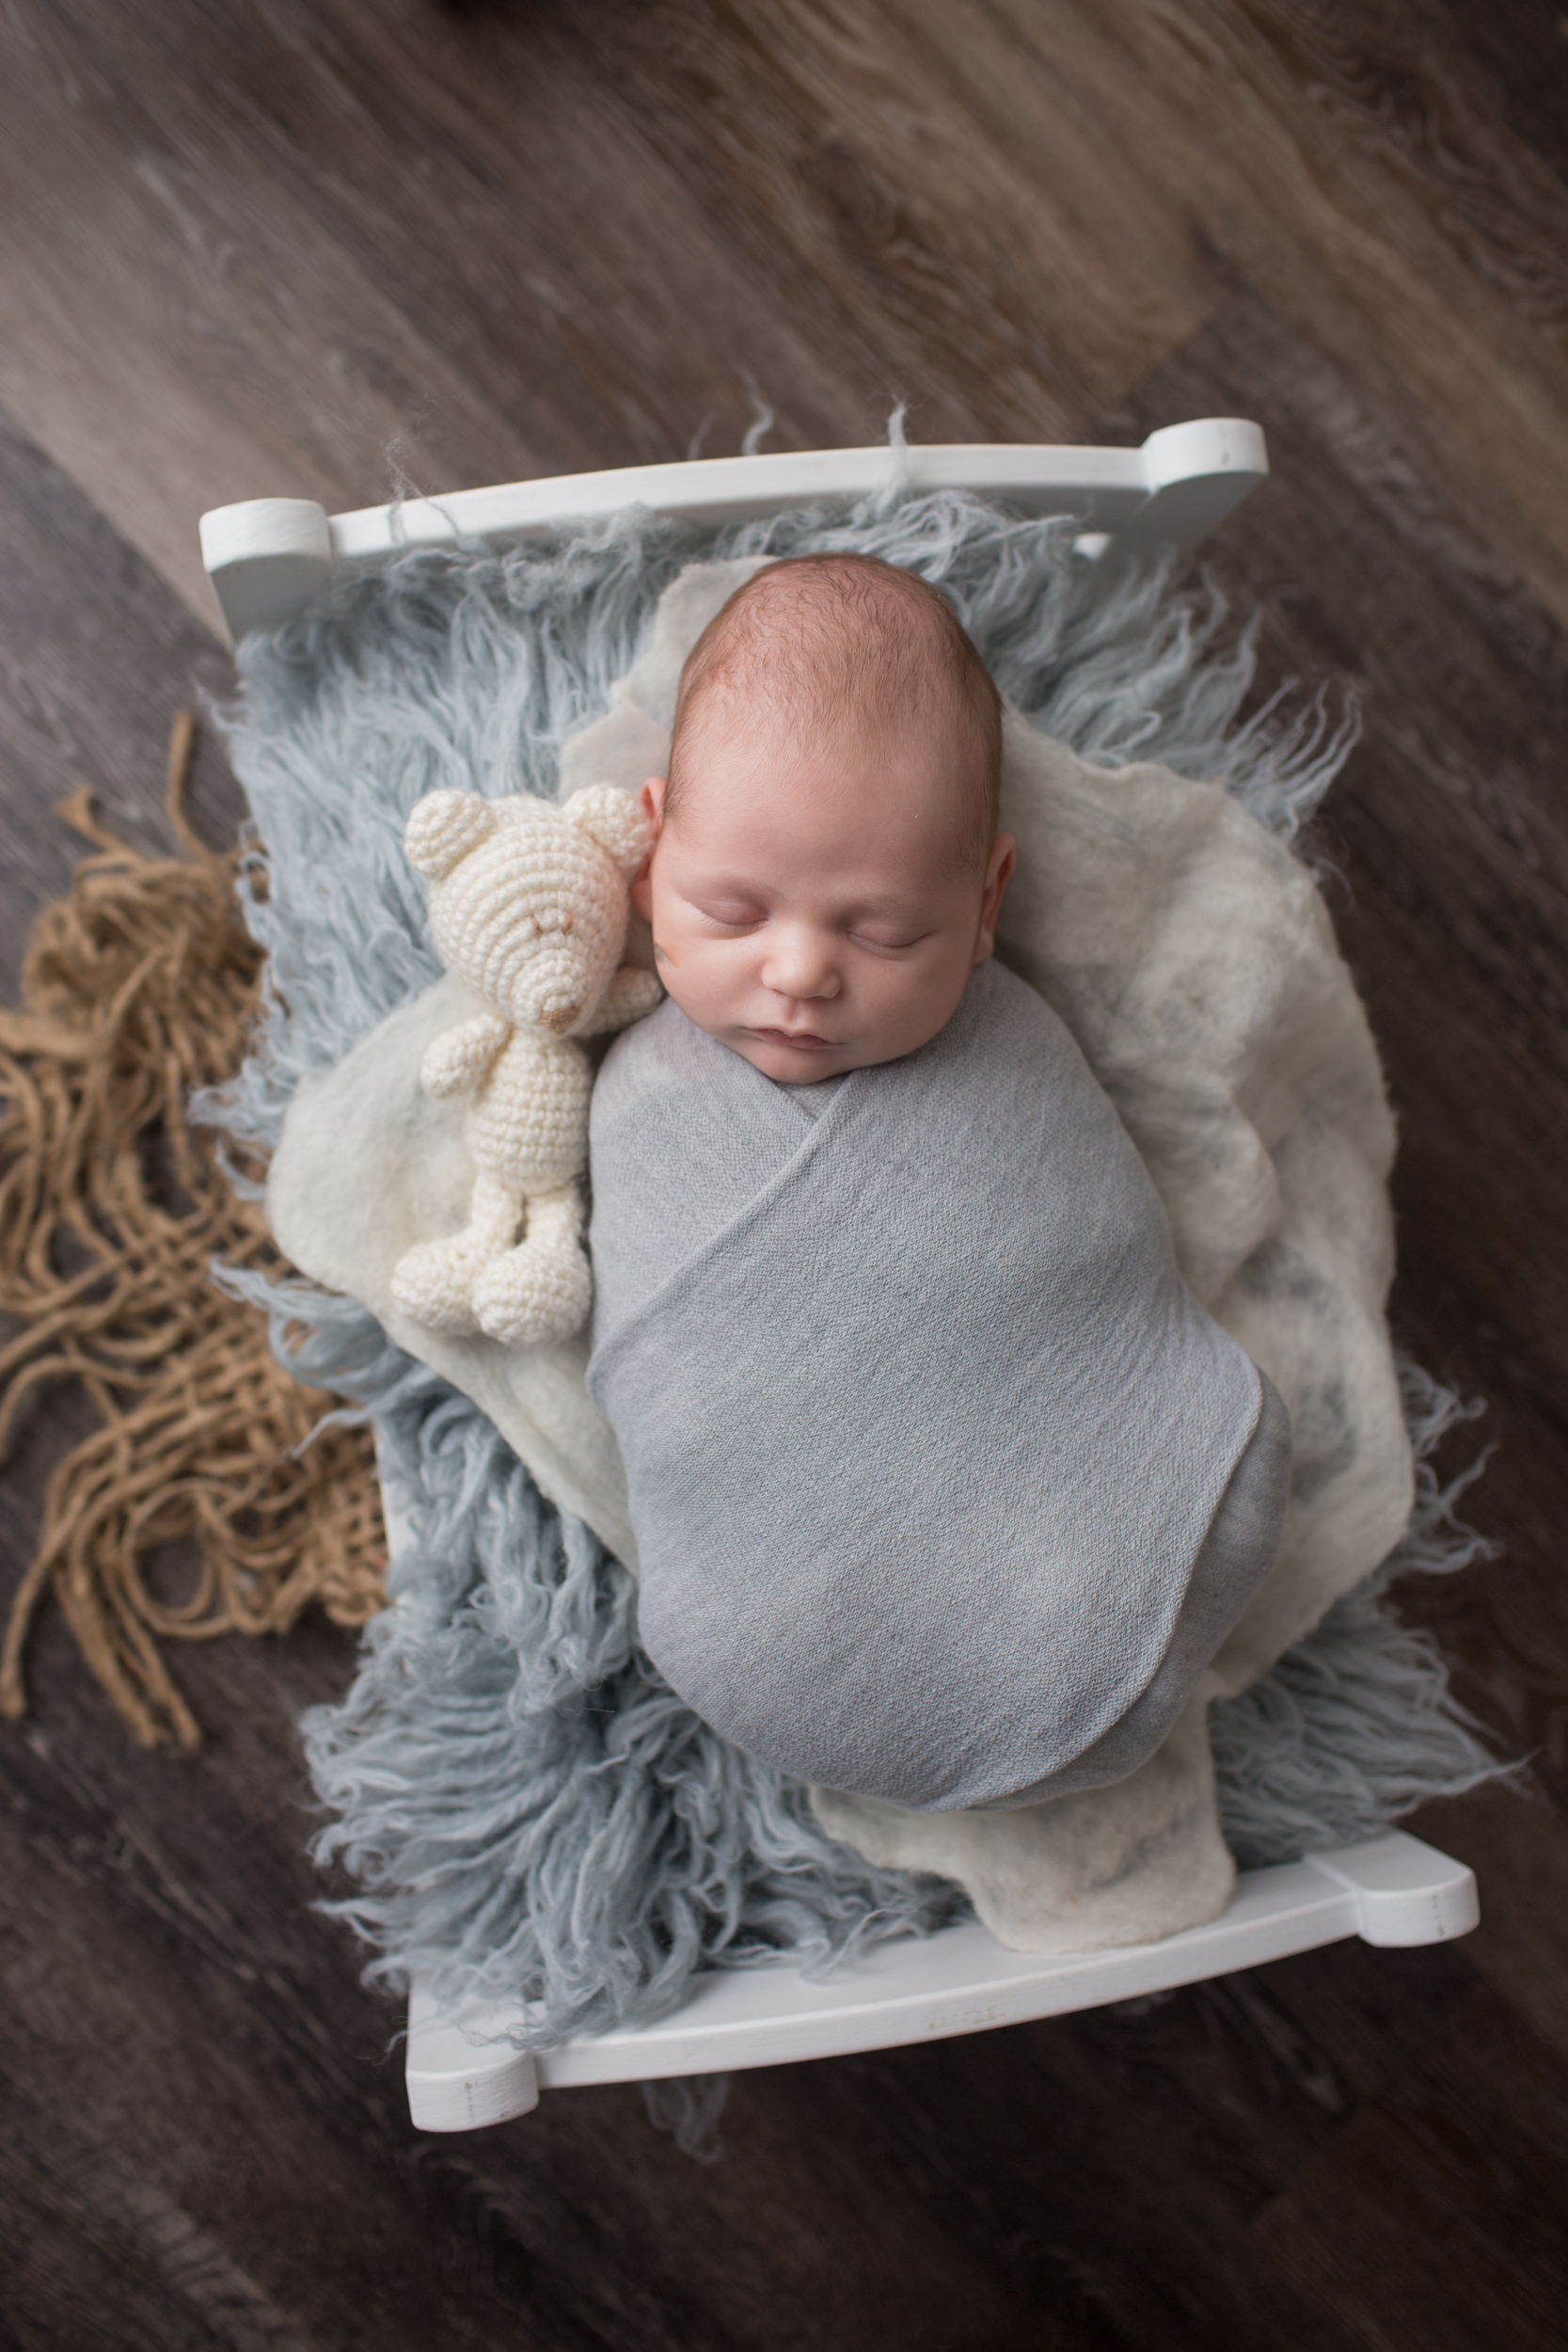 baby boy in bed with bear during baby portrait session with Kaye's Photography